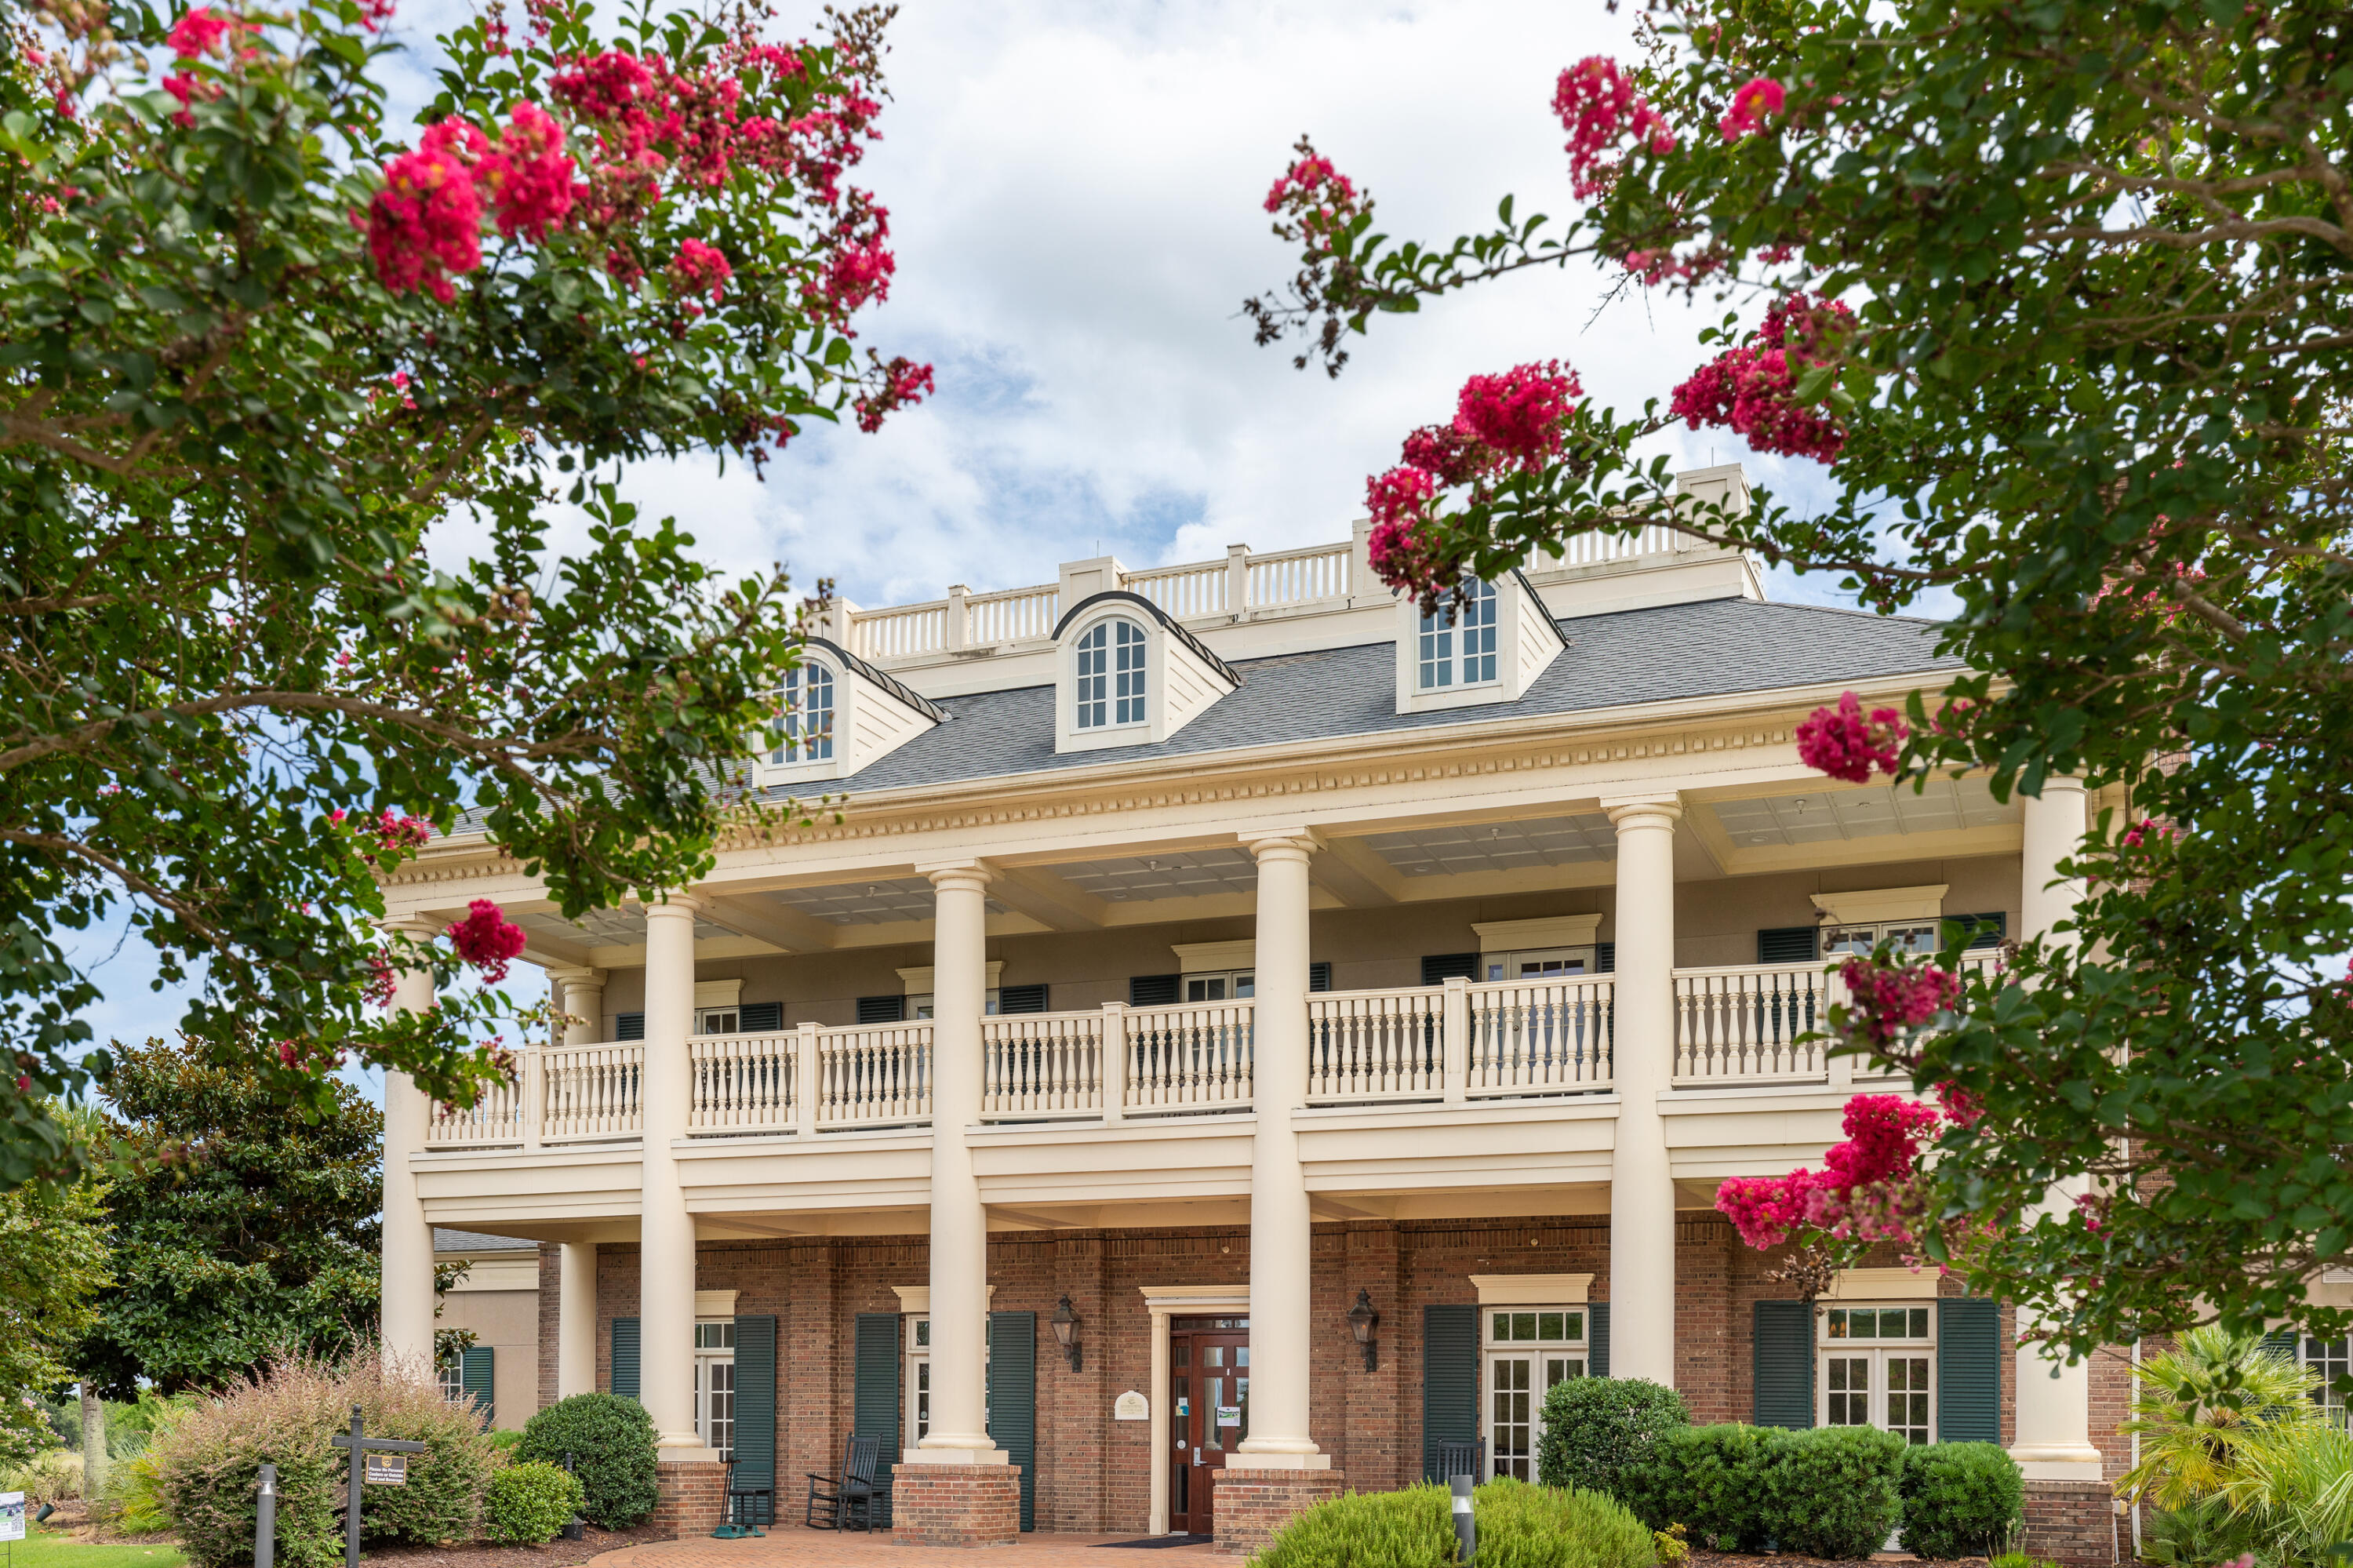 Rivertowne Country Club Homes For Sale - 1725 Rivertowne Country Club, Mount Pleasant, SC - 40